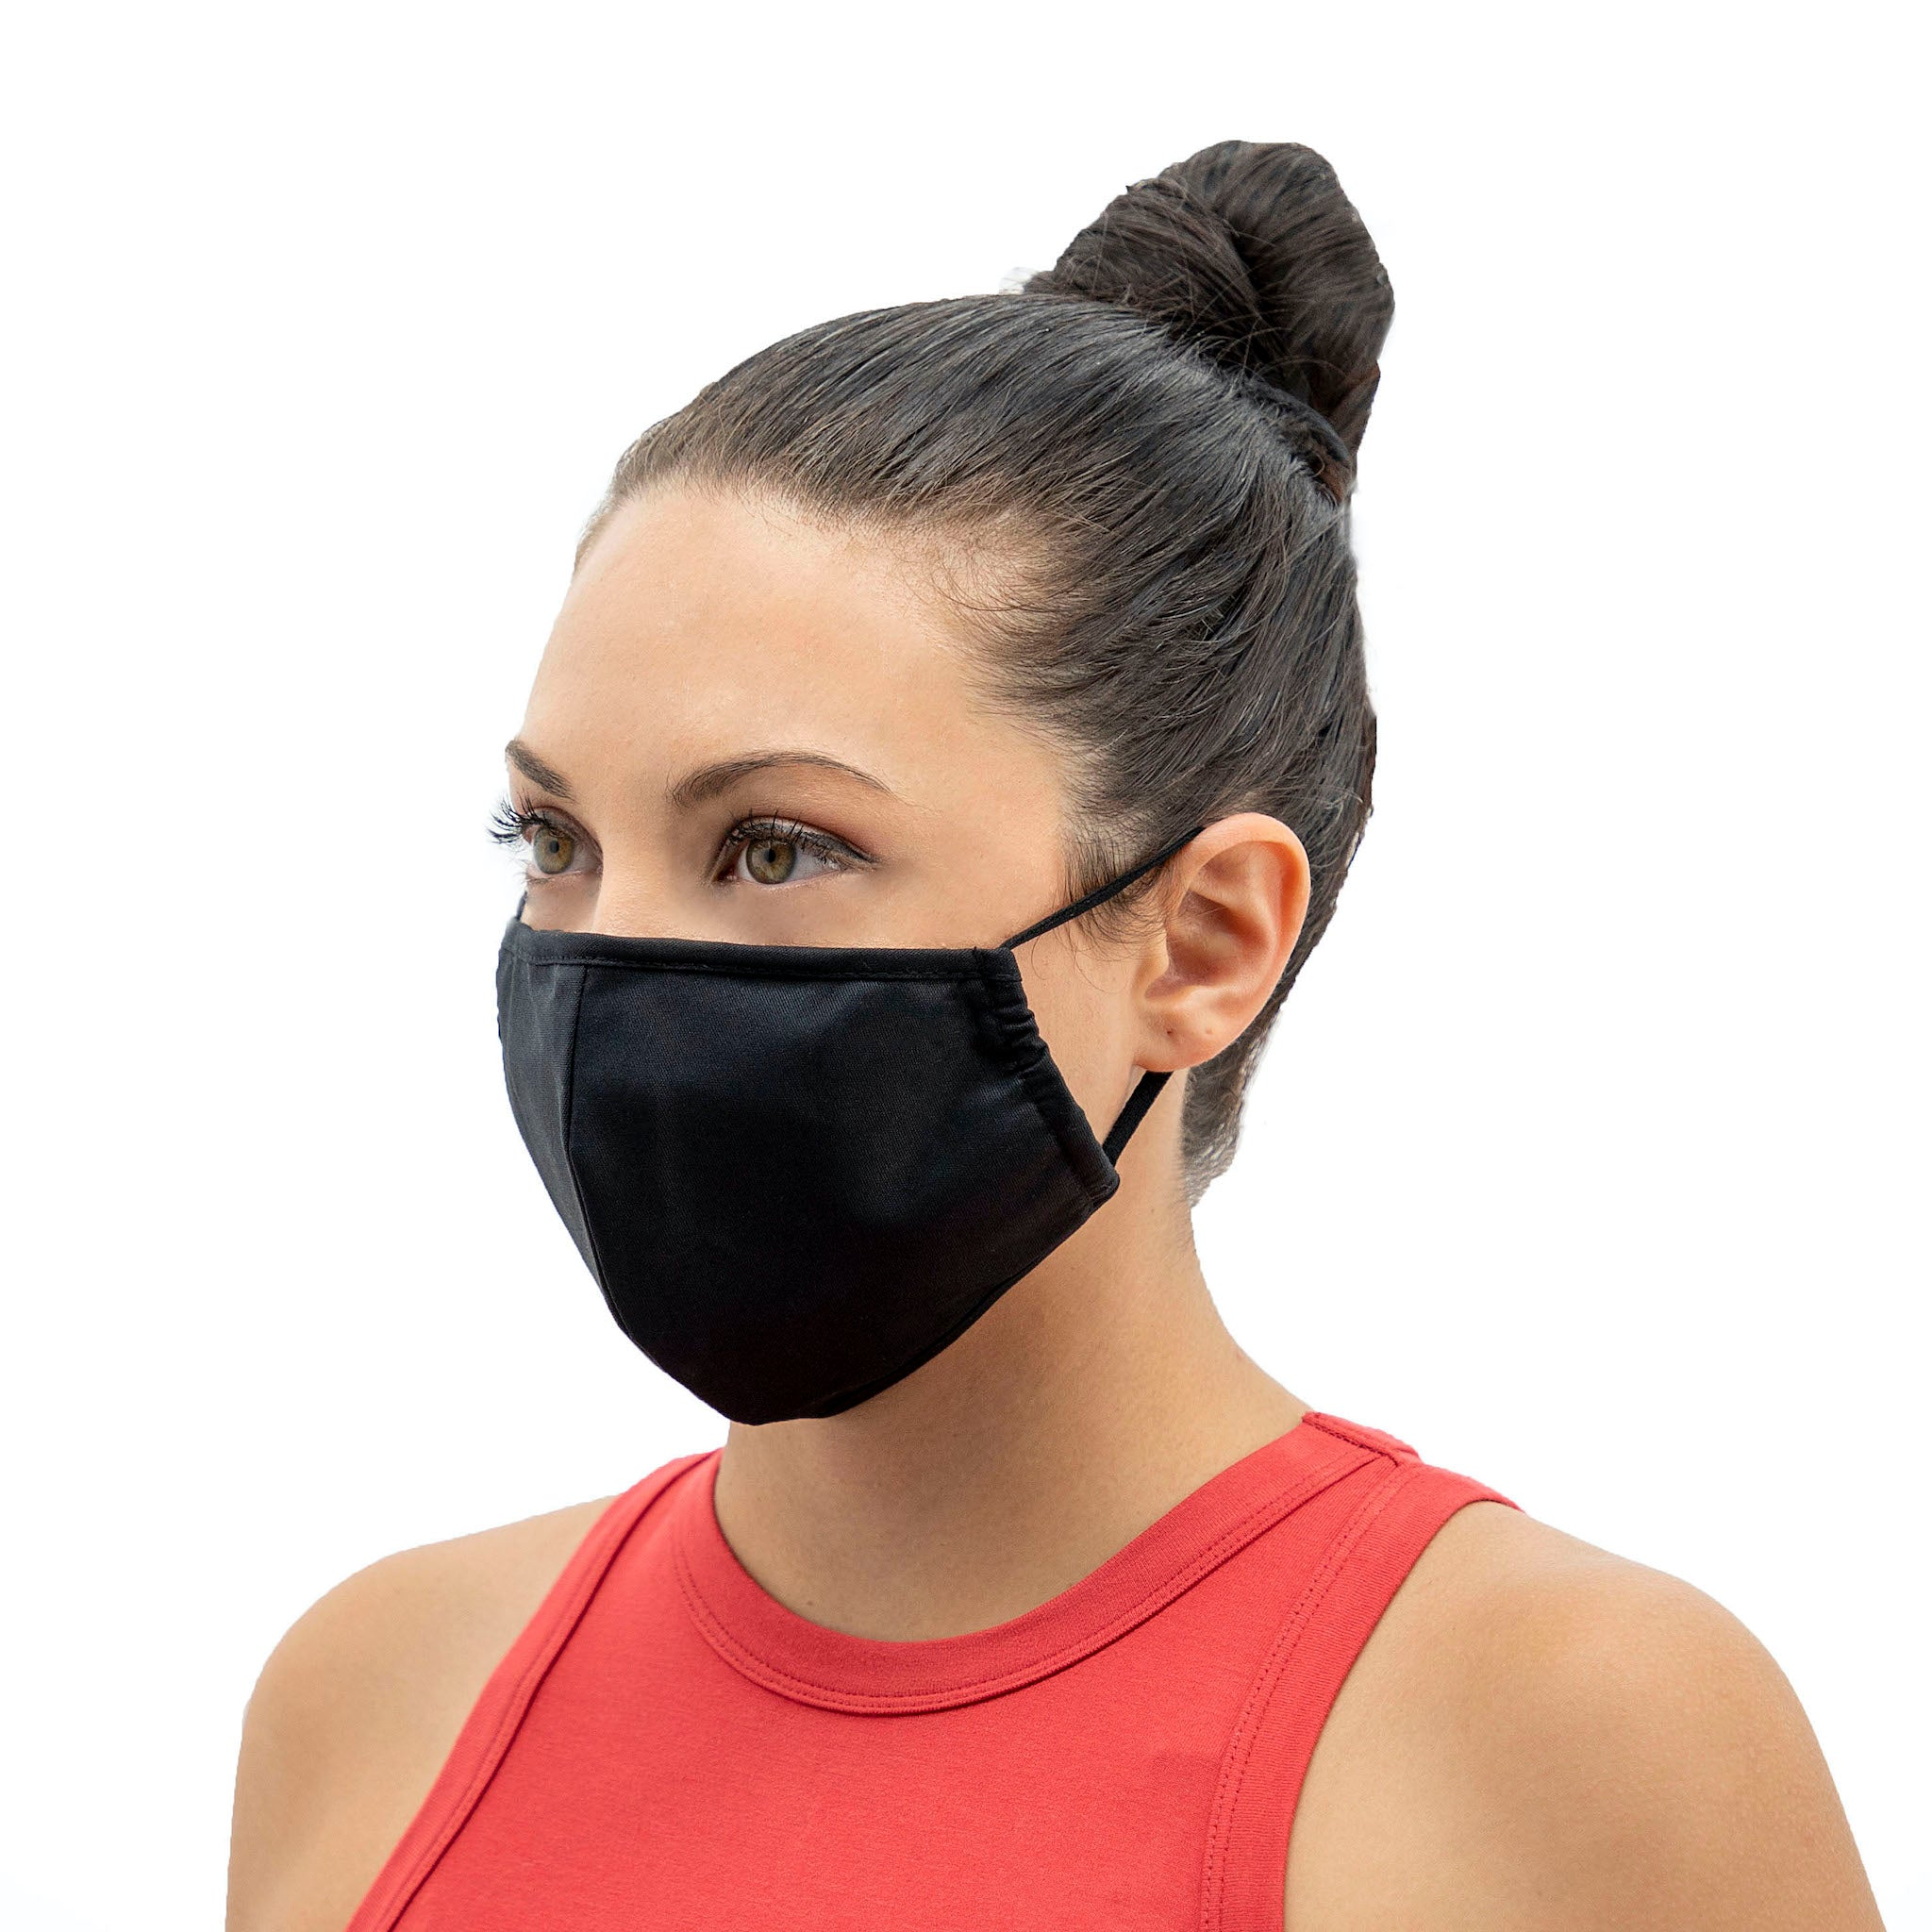 Wrapture Masks Black Face Mask Antimicrobial & Washable - On Woman